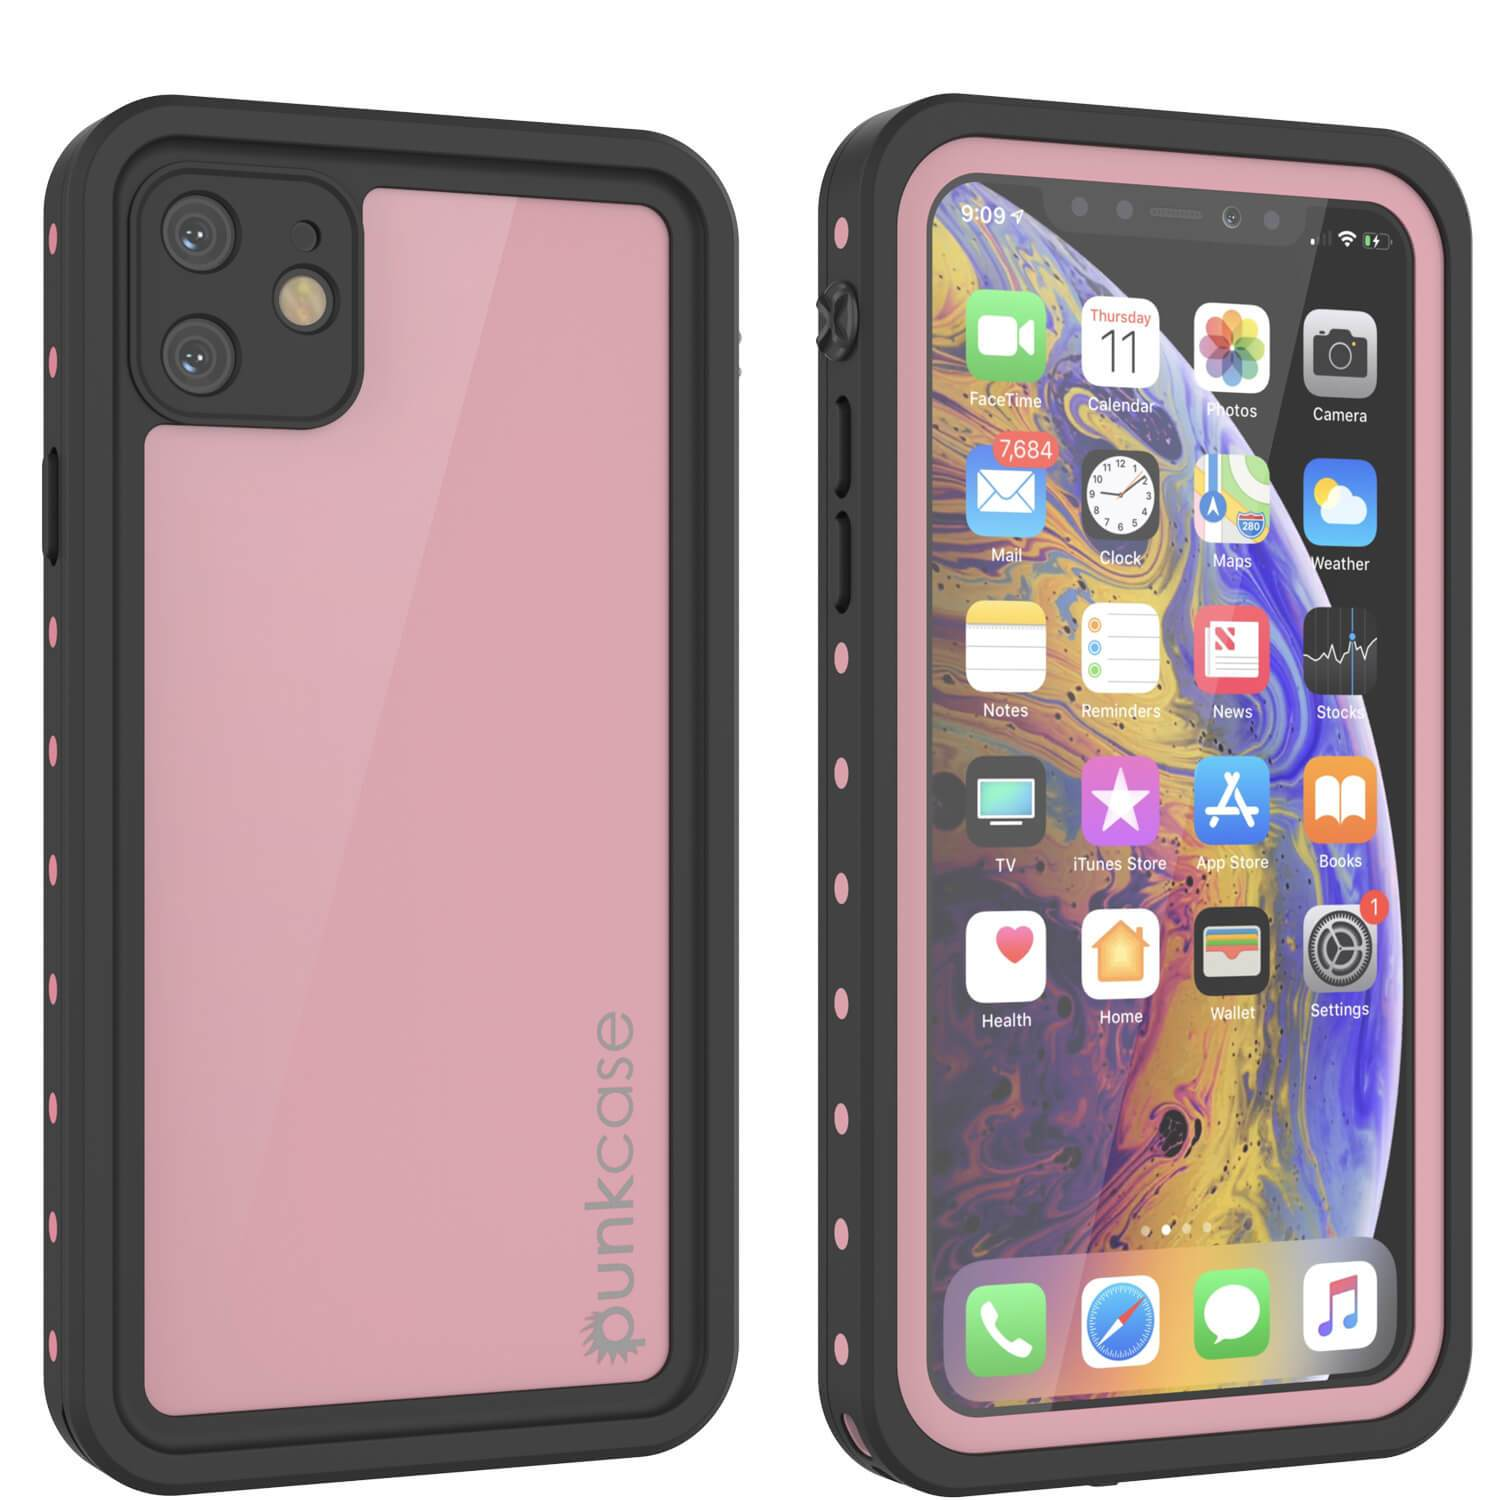 iPhone 11 Waterproof IP68 Case, Punkcase [Pink] [StudStar Series] [Slim Fit] [Dirtproof]